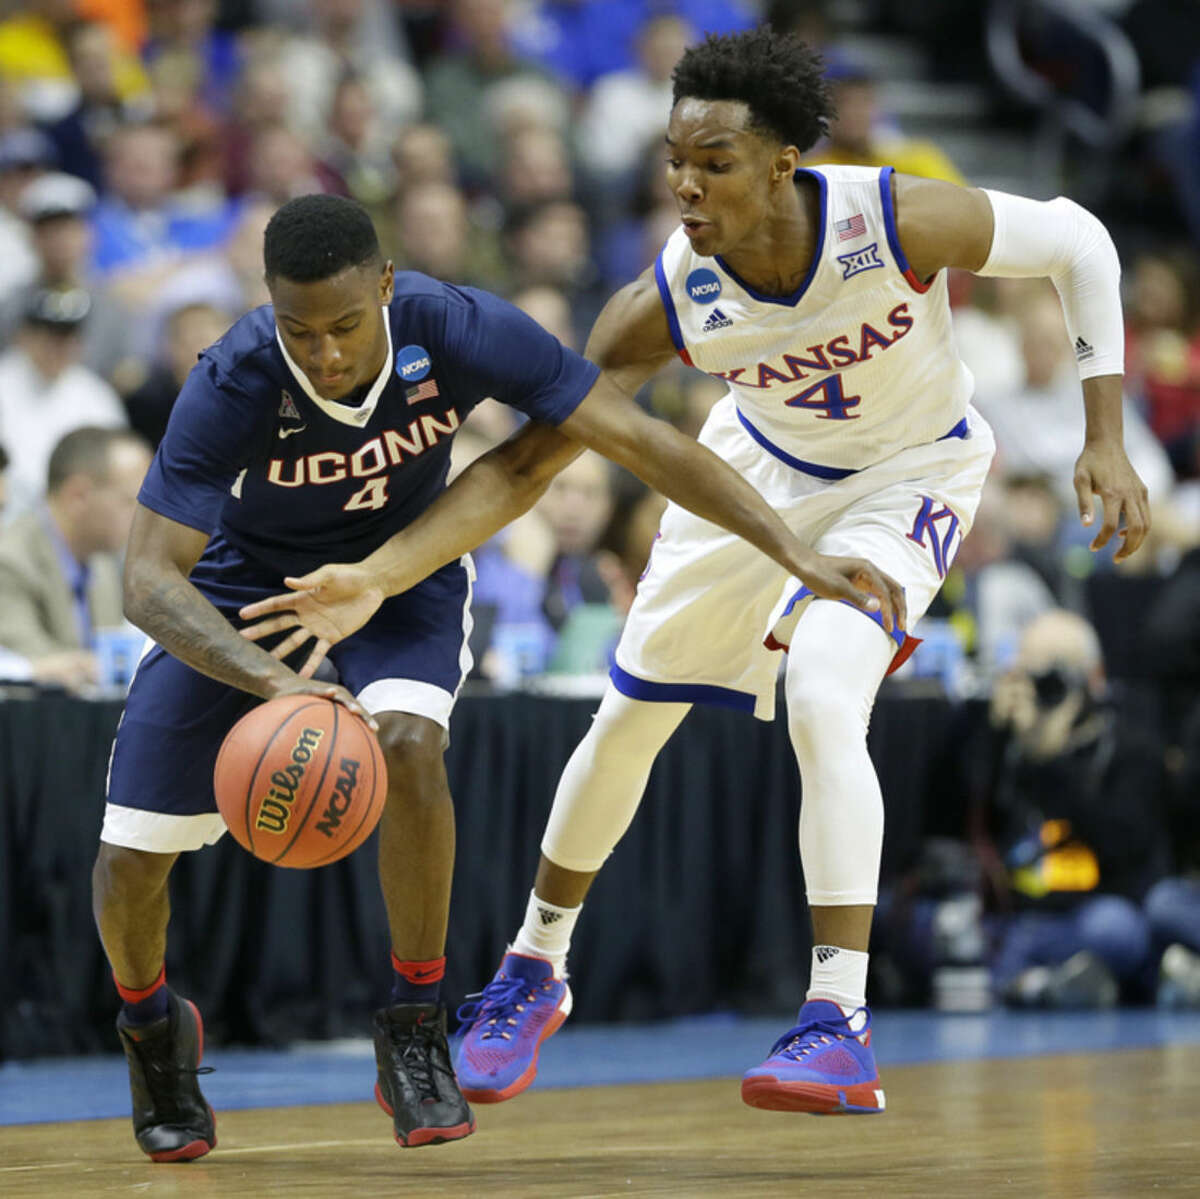 Kansas guard Devonte' Graham, right, tries to steal the ball from Connecticut guard Sterling Gibbs during the first half of a second-round men's college basketball game in the NCAA Tournament, Saturday, March 19, 2016, in Des Moines, Iowa. (AP Photo/Charlie Neibergall)